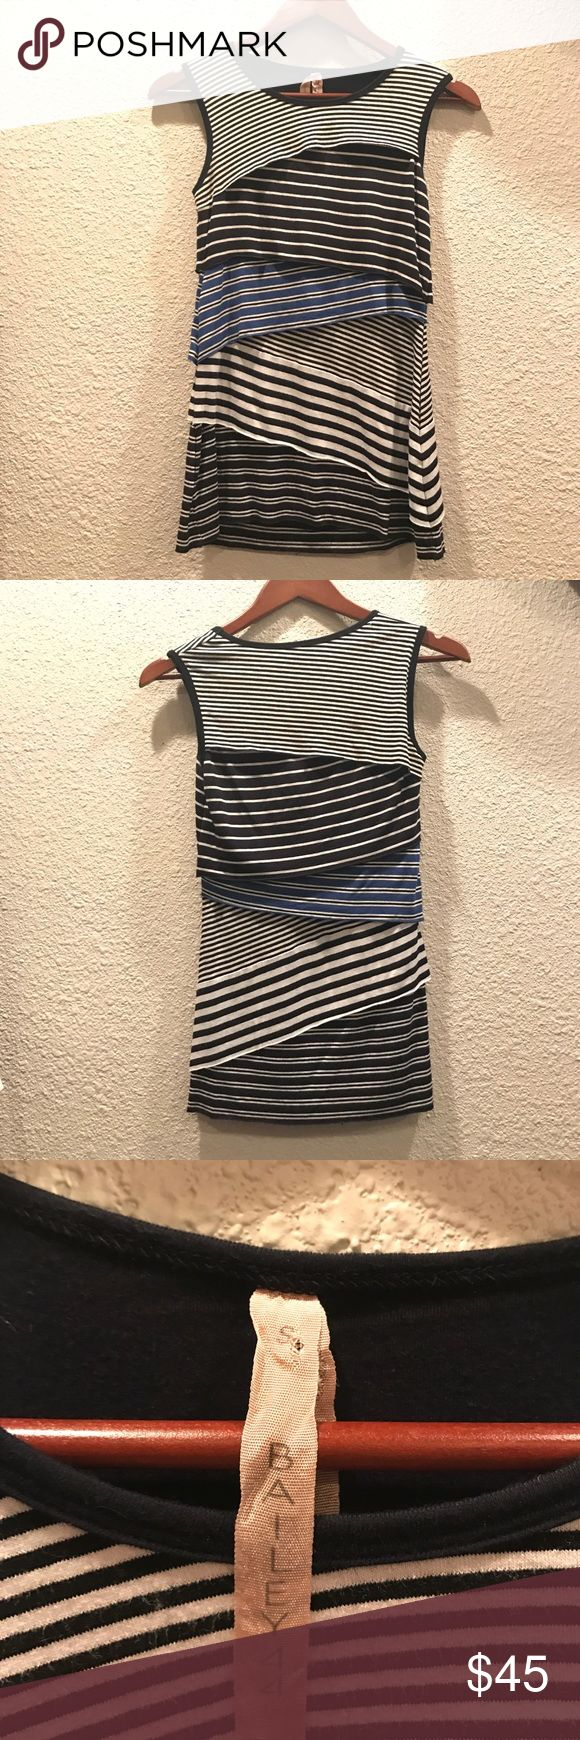 Bailey 44 Tiered Striped Tank Super cute tiered striped tank by Bailey 44. Perfect for spring and summer. Features 96% rayon and 4% spandex, dry clean only, tiered layers in a variety of striped patterns in navy and brighter blue. Feel free to ask any questions Anthropologie Tops